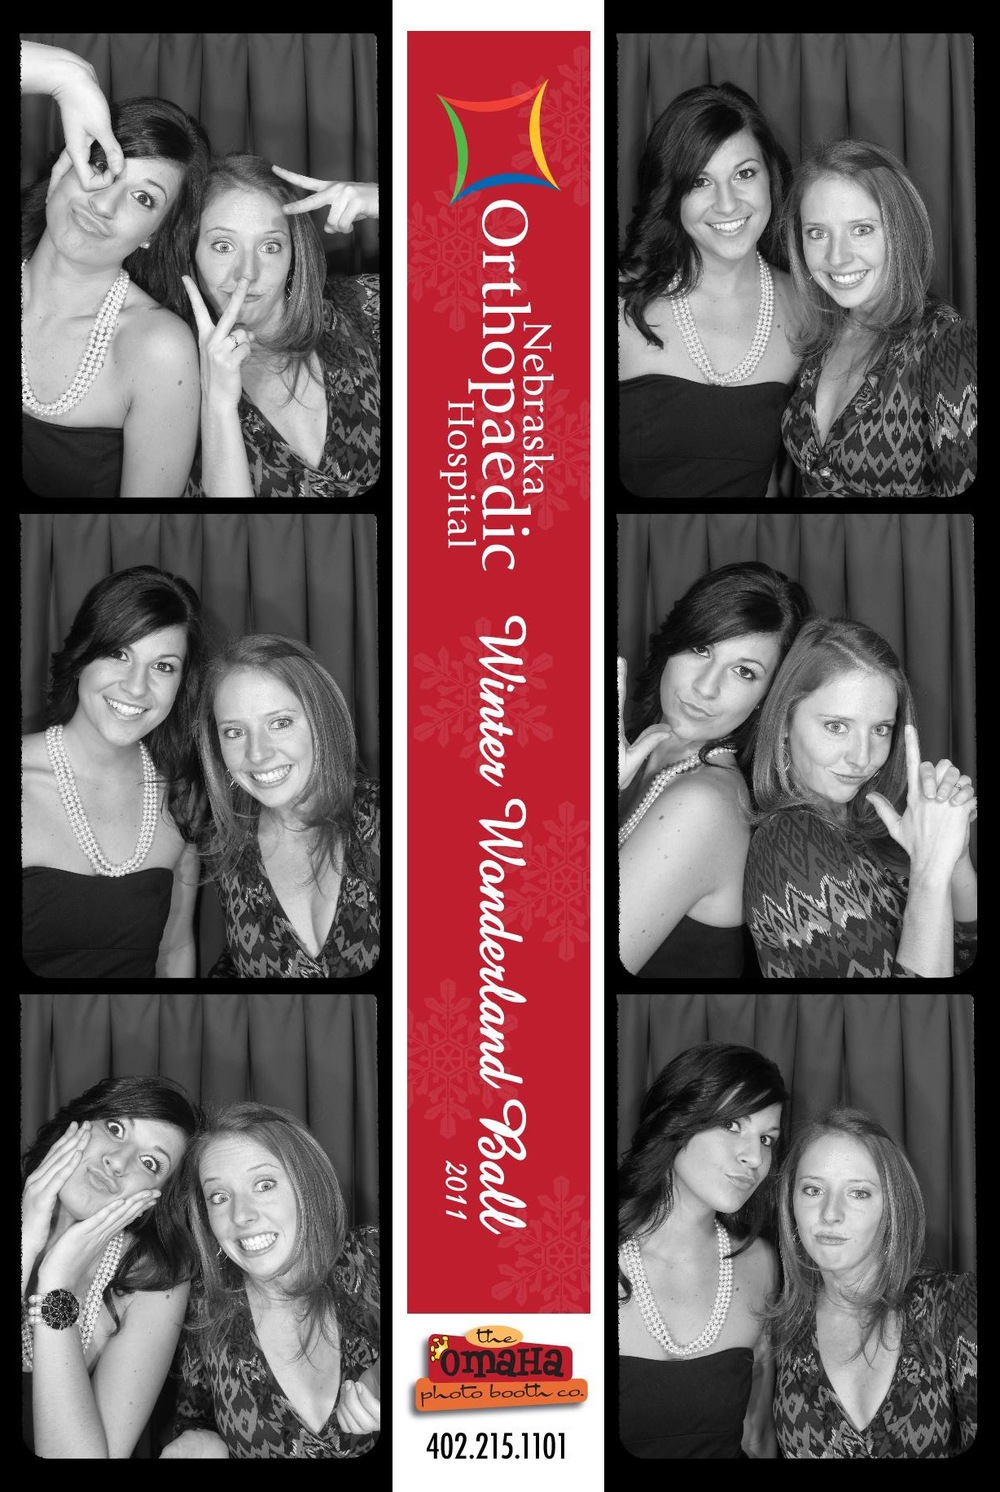 Omaha Photo Booth Rental Corporate Party